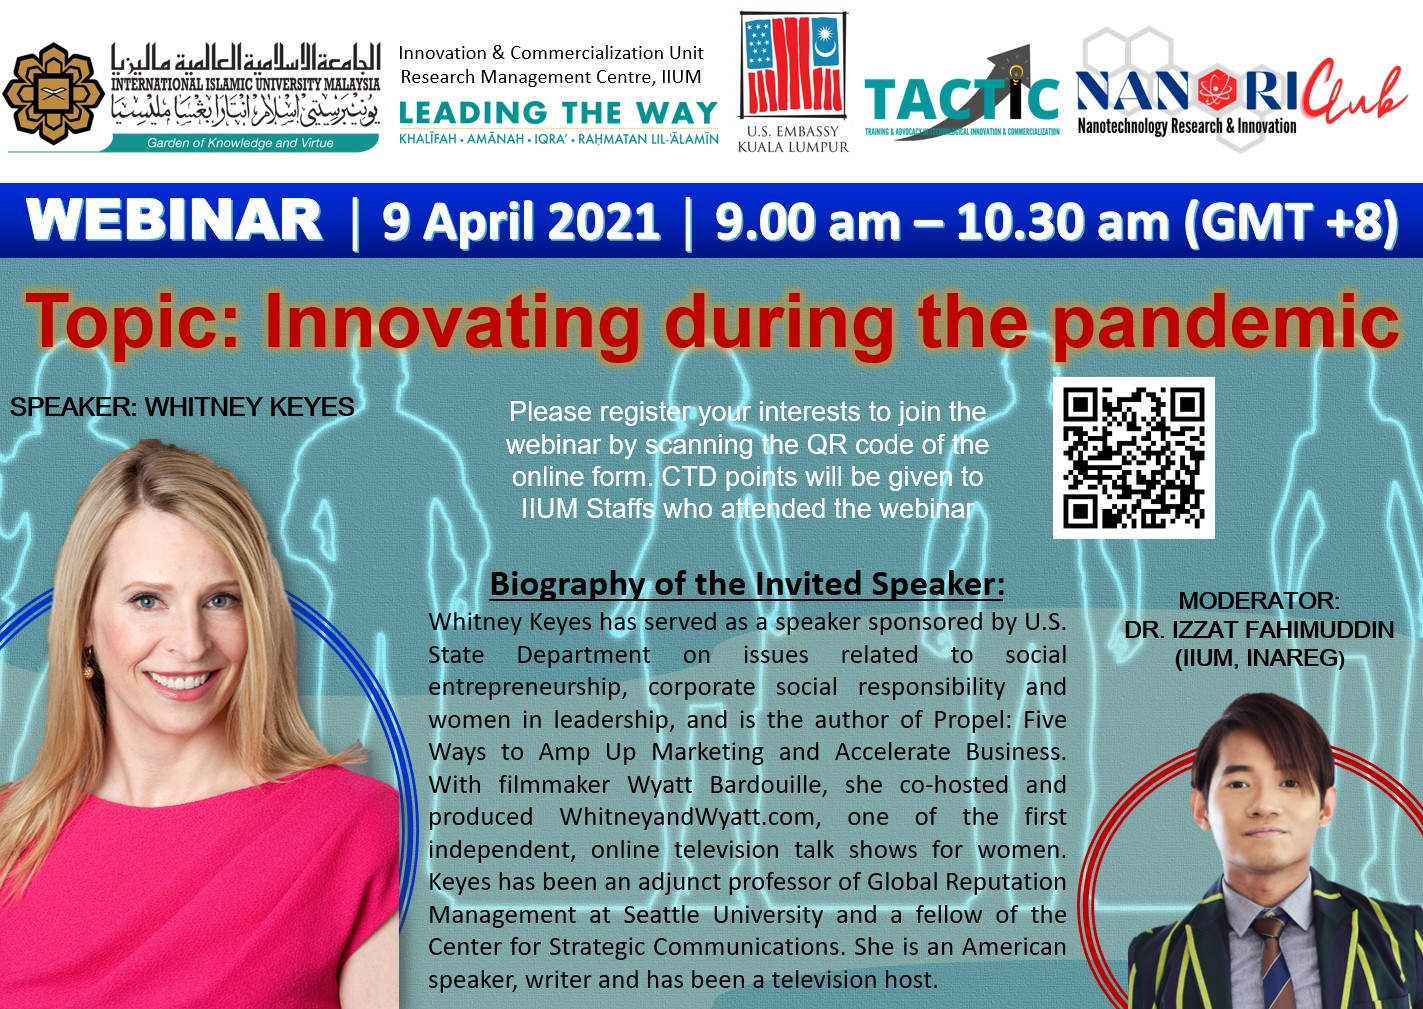 INVITATION TO ATTEND A WEBINAR: INNOVATING DURING THE PANDEMIC